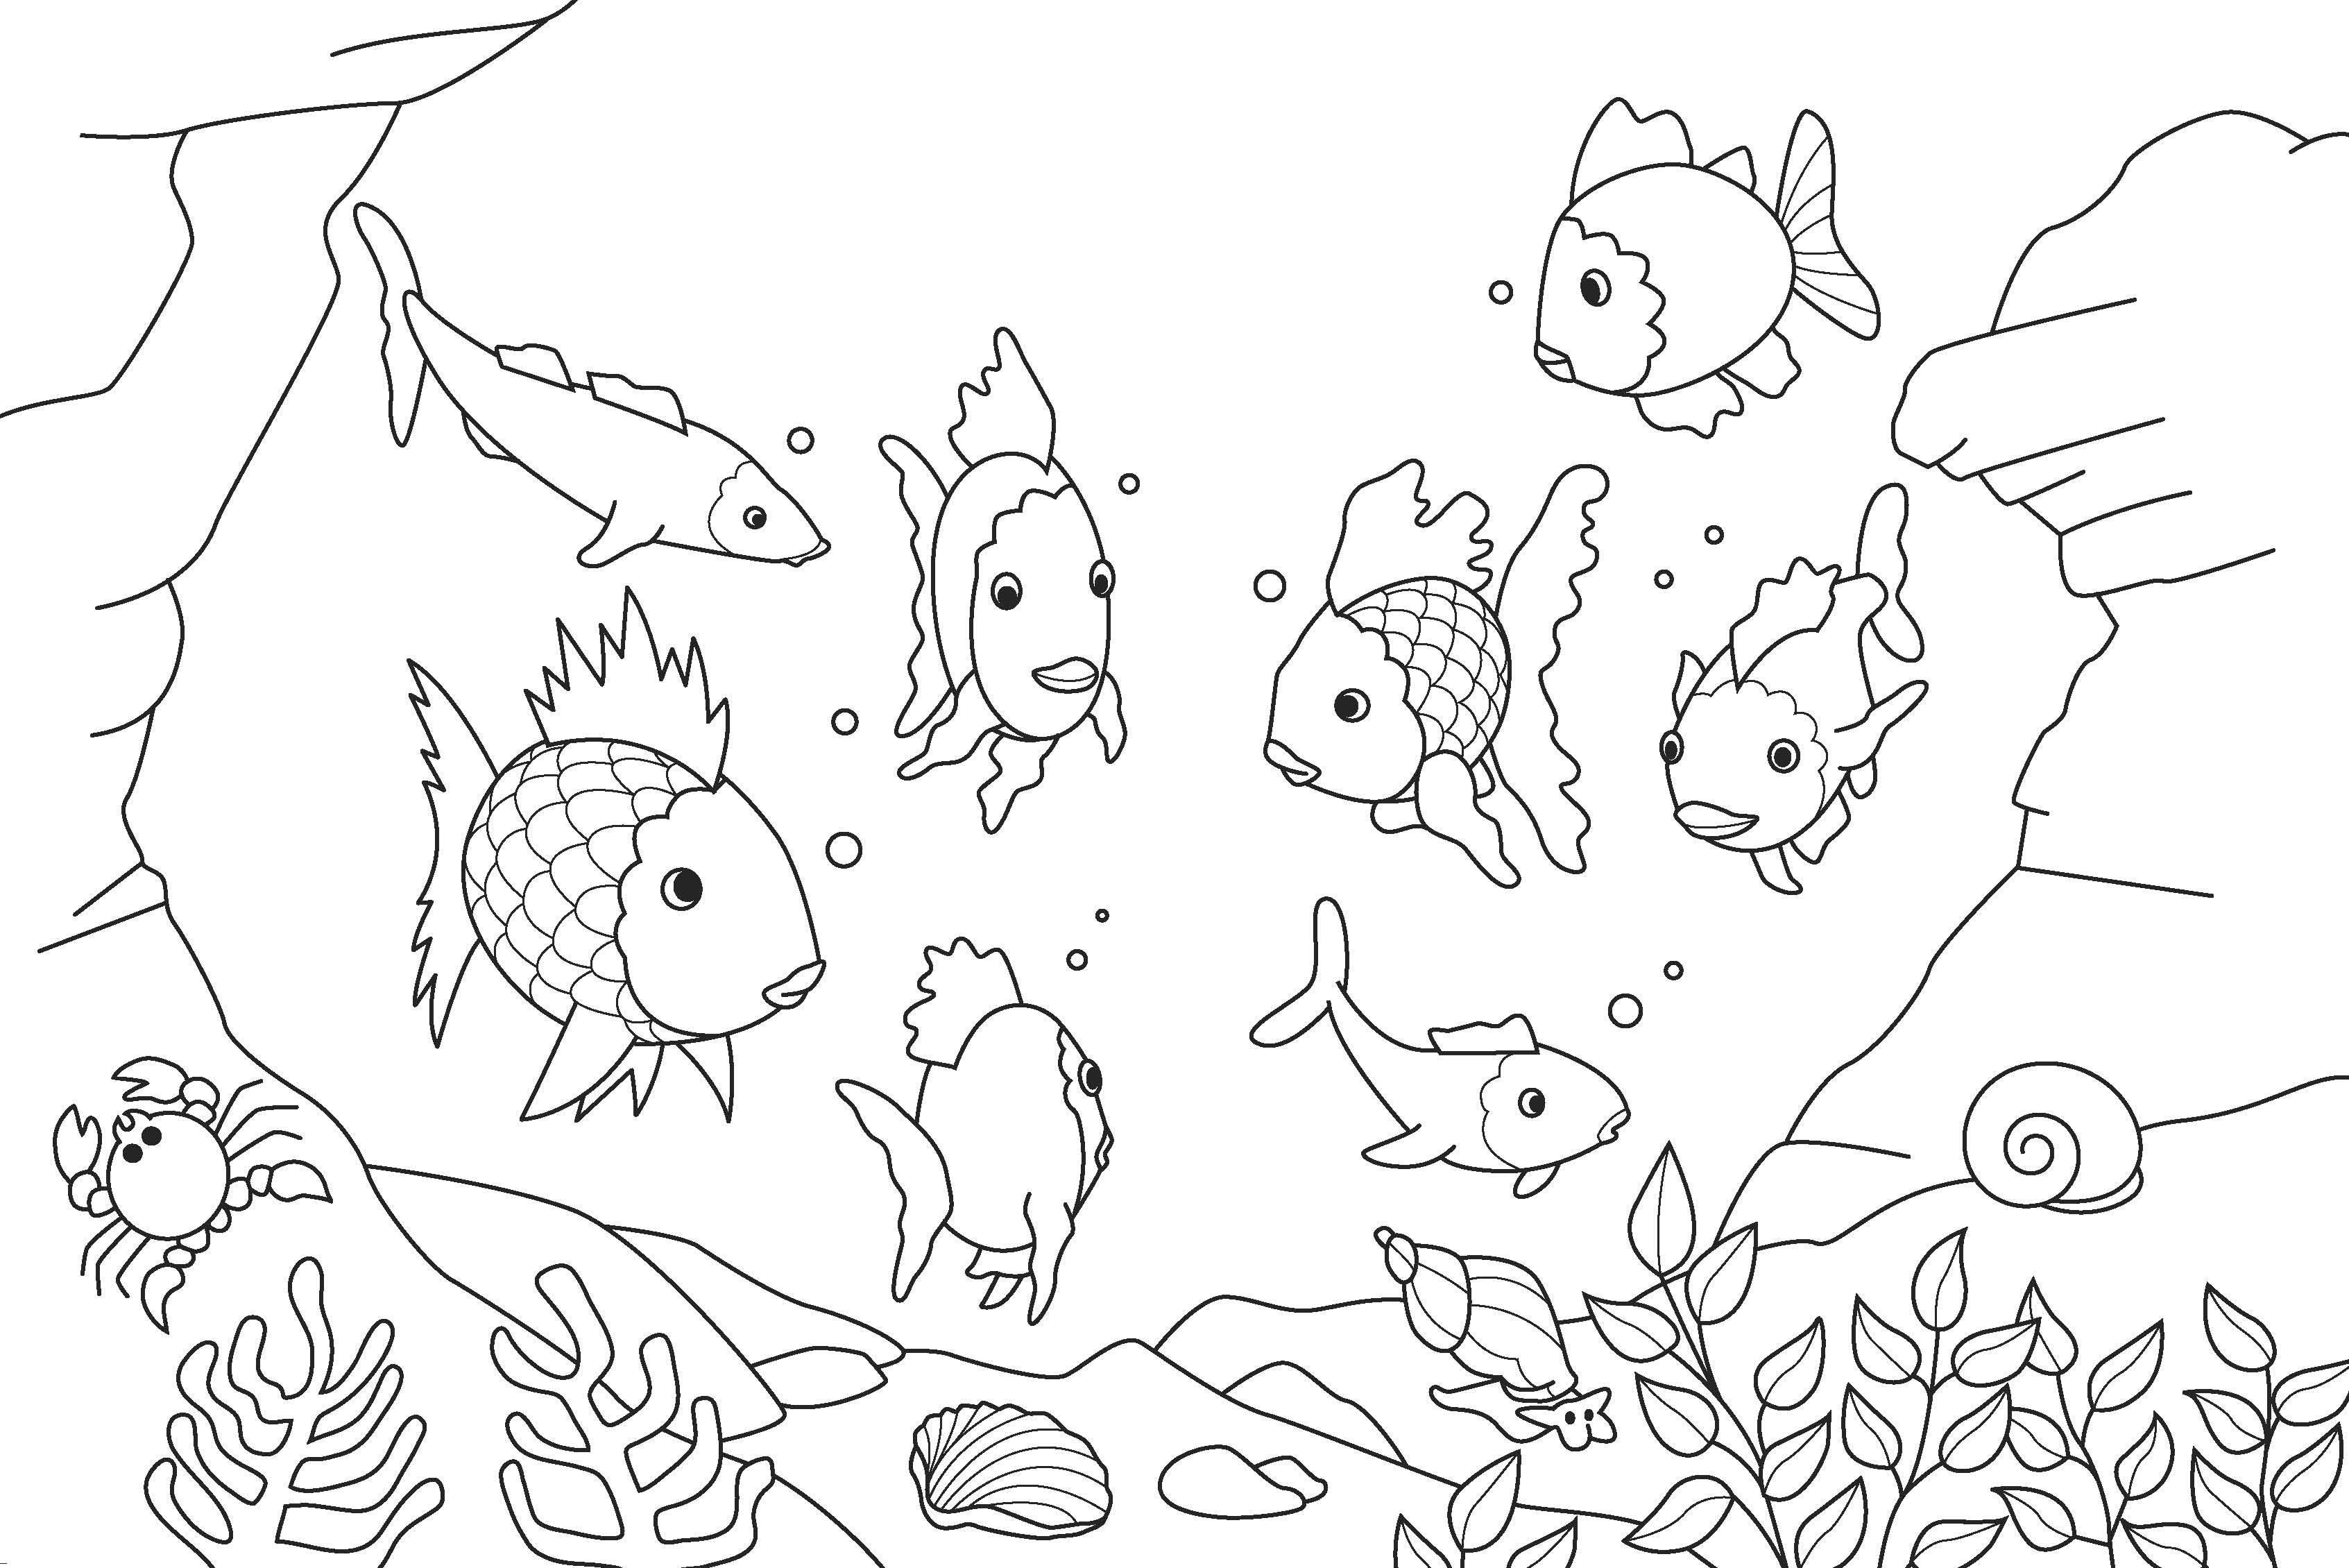 download fish coloring pages 7 - Fish Coloring Pages